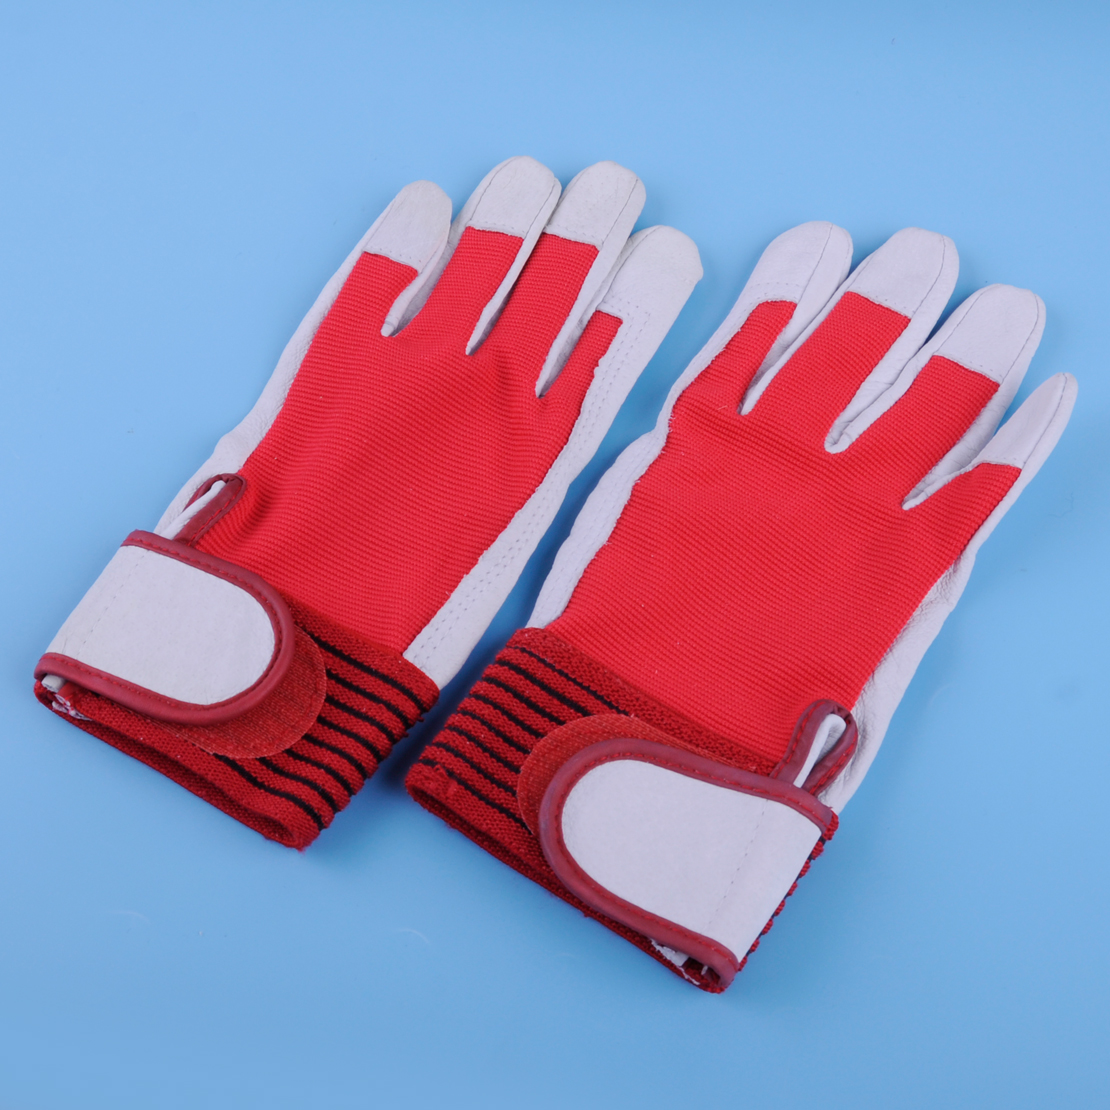 TIG Finger Weld Monger Welding Gloves Heat Shield Cover Safety Guard Protection